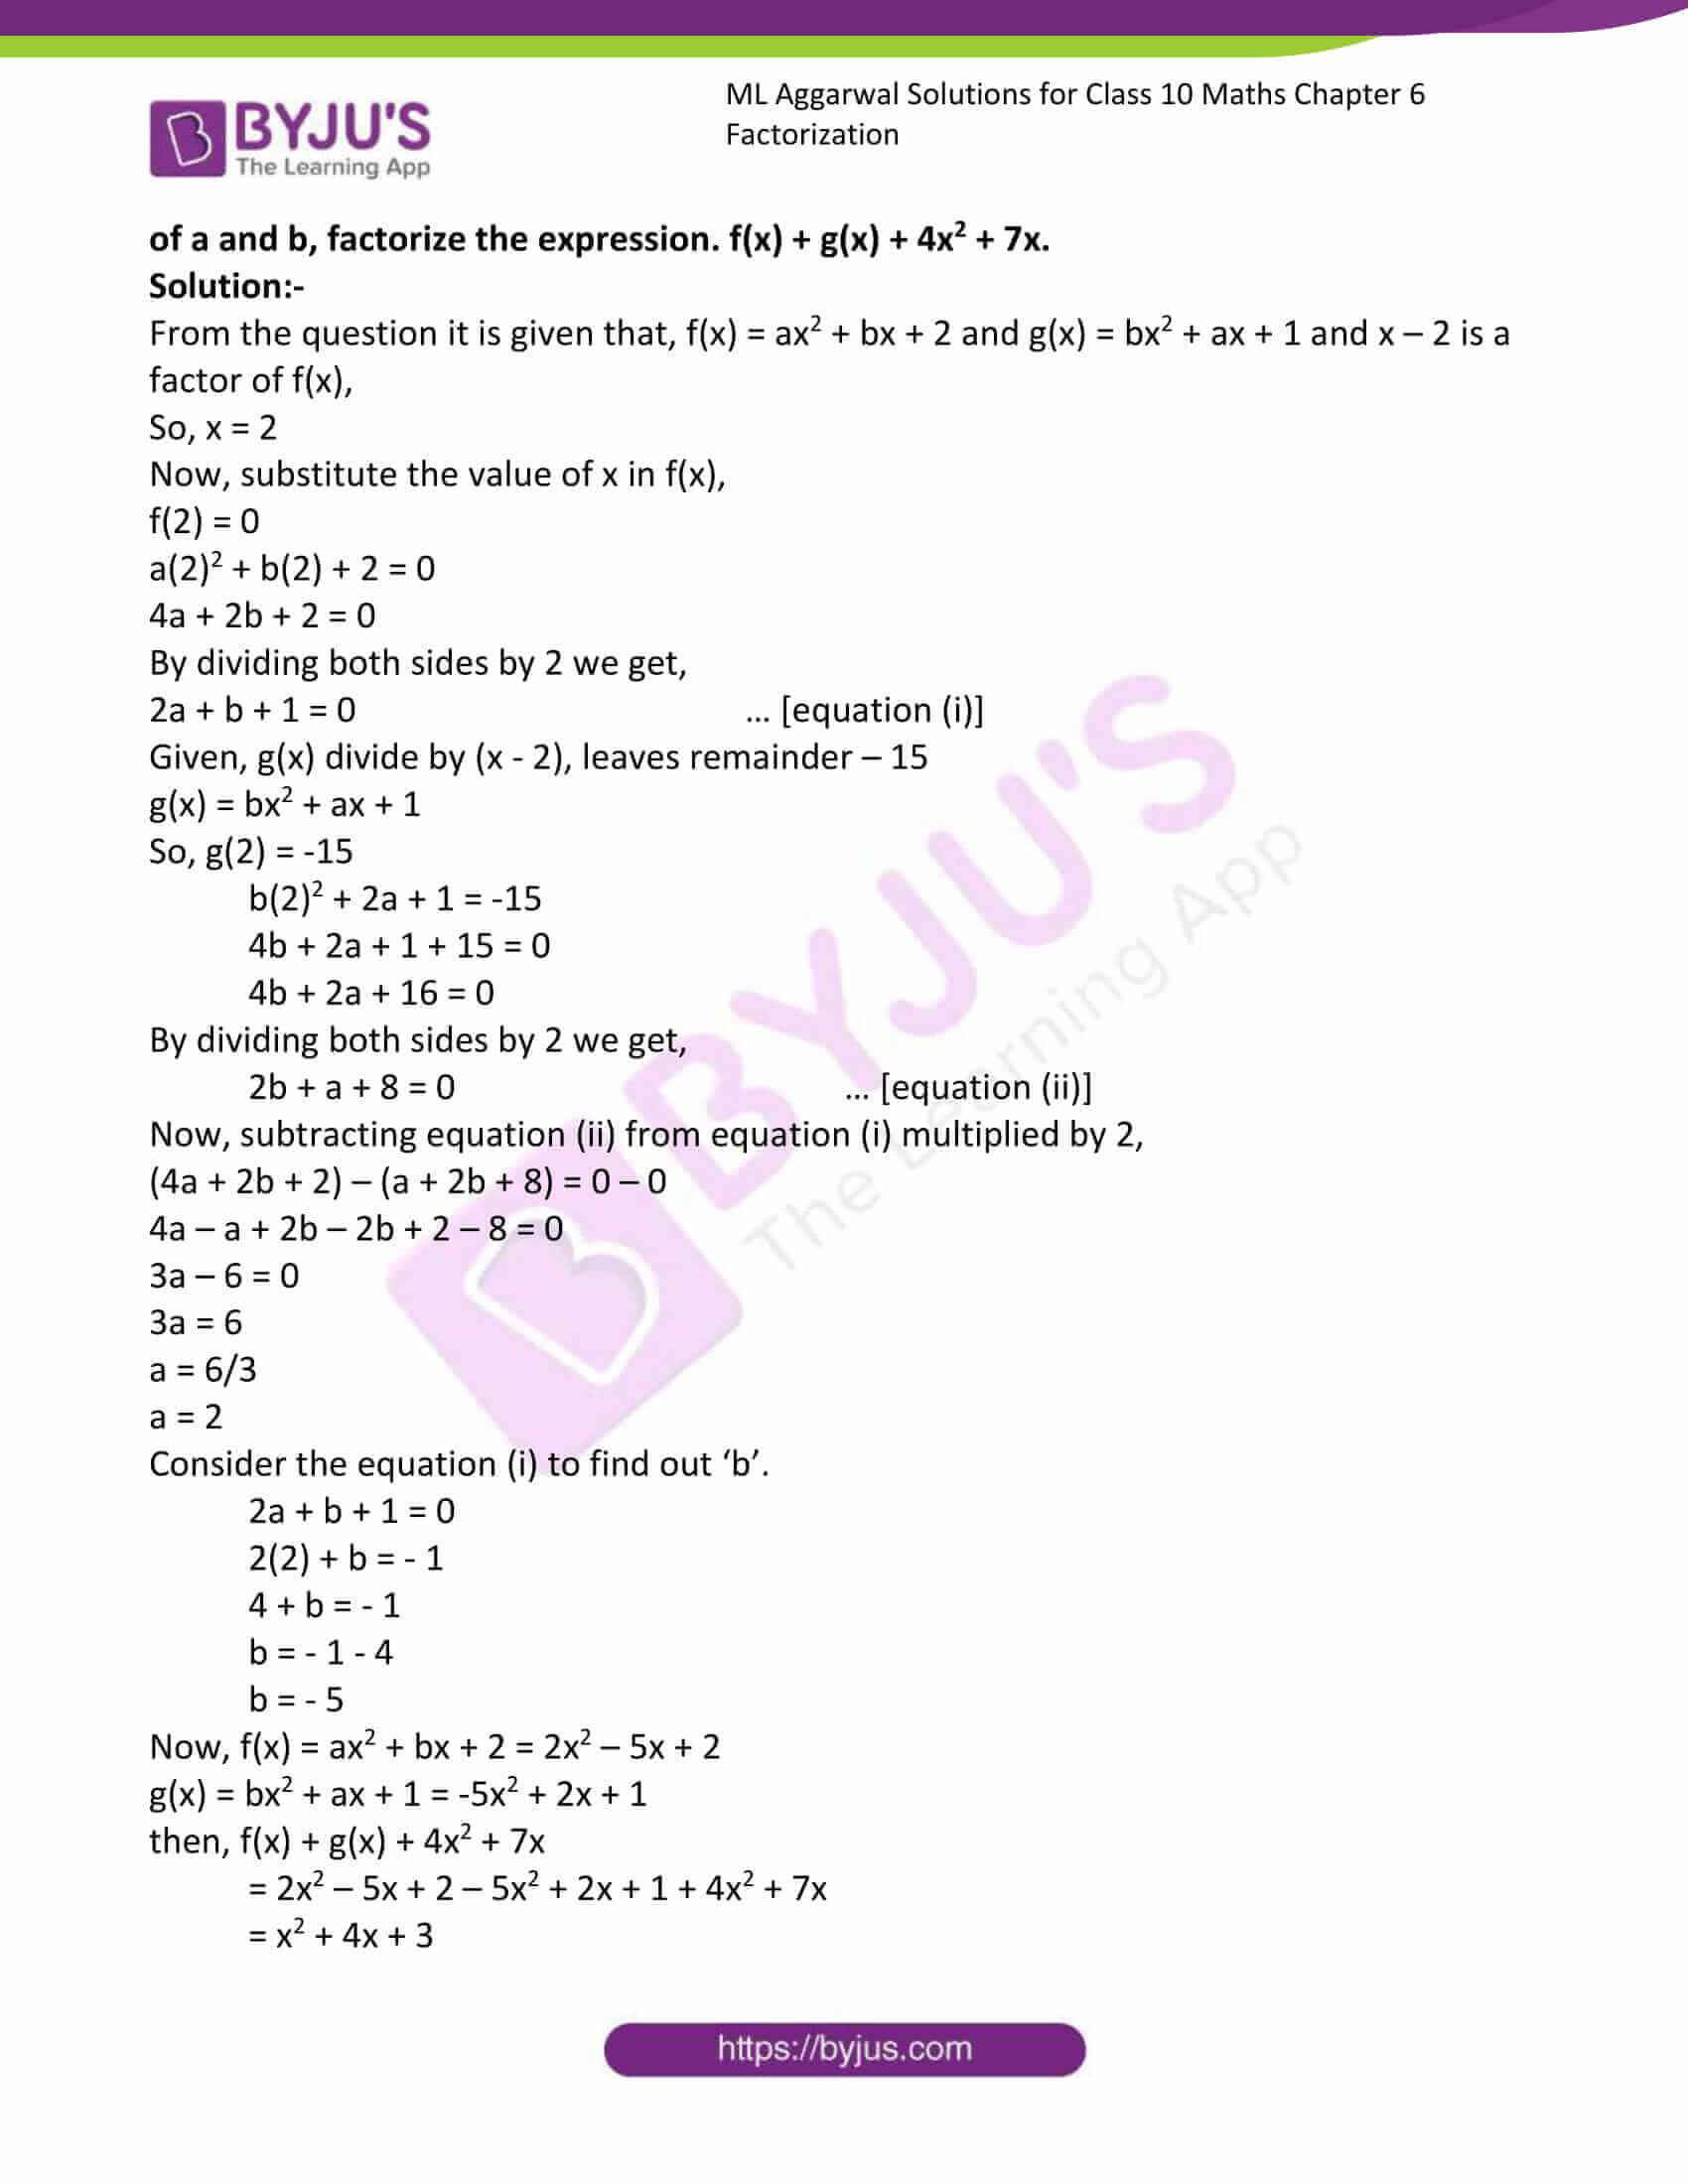 ml aggarwal solutions class 10 maths chapter 6 28